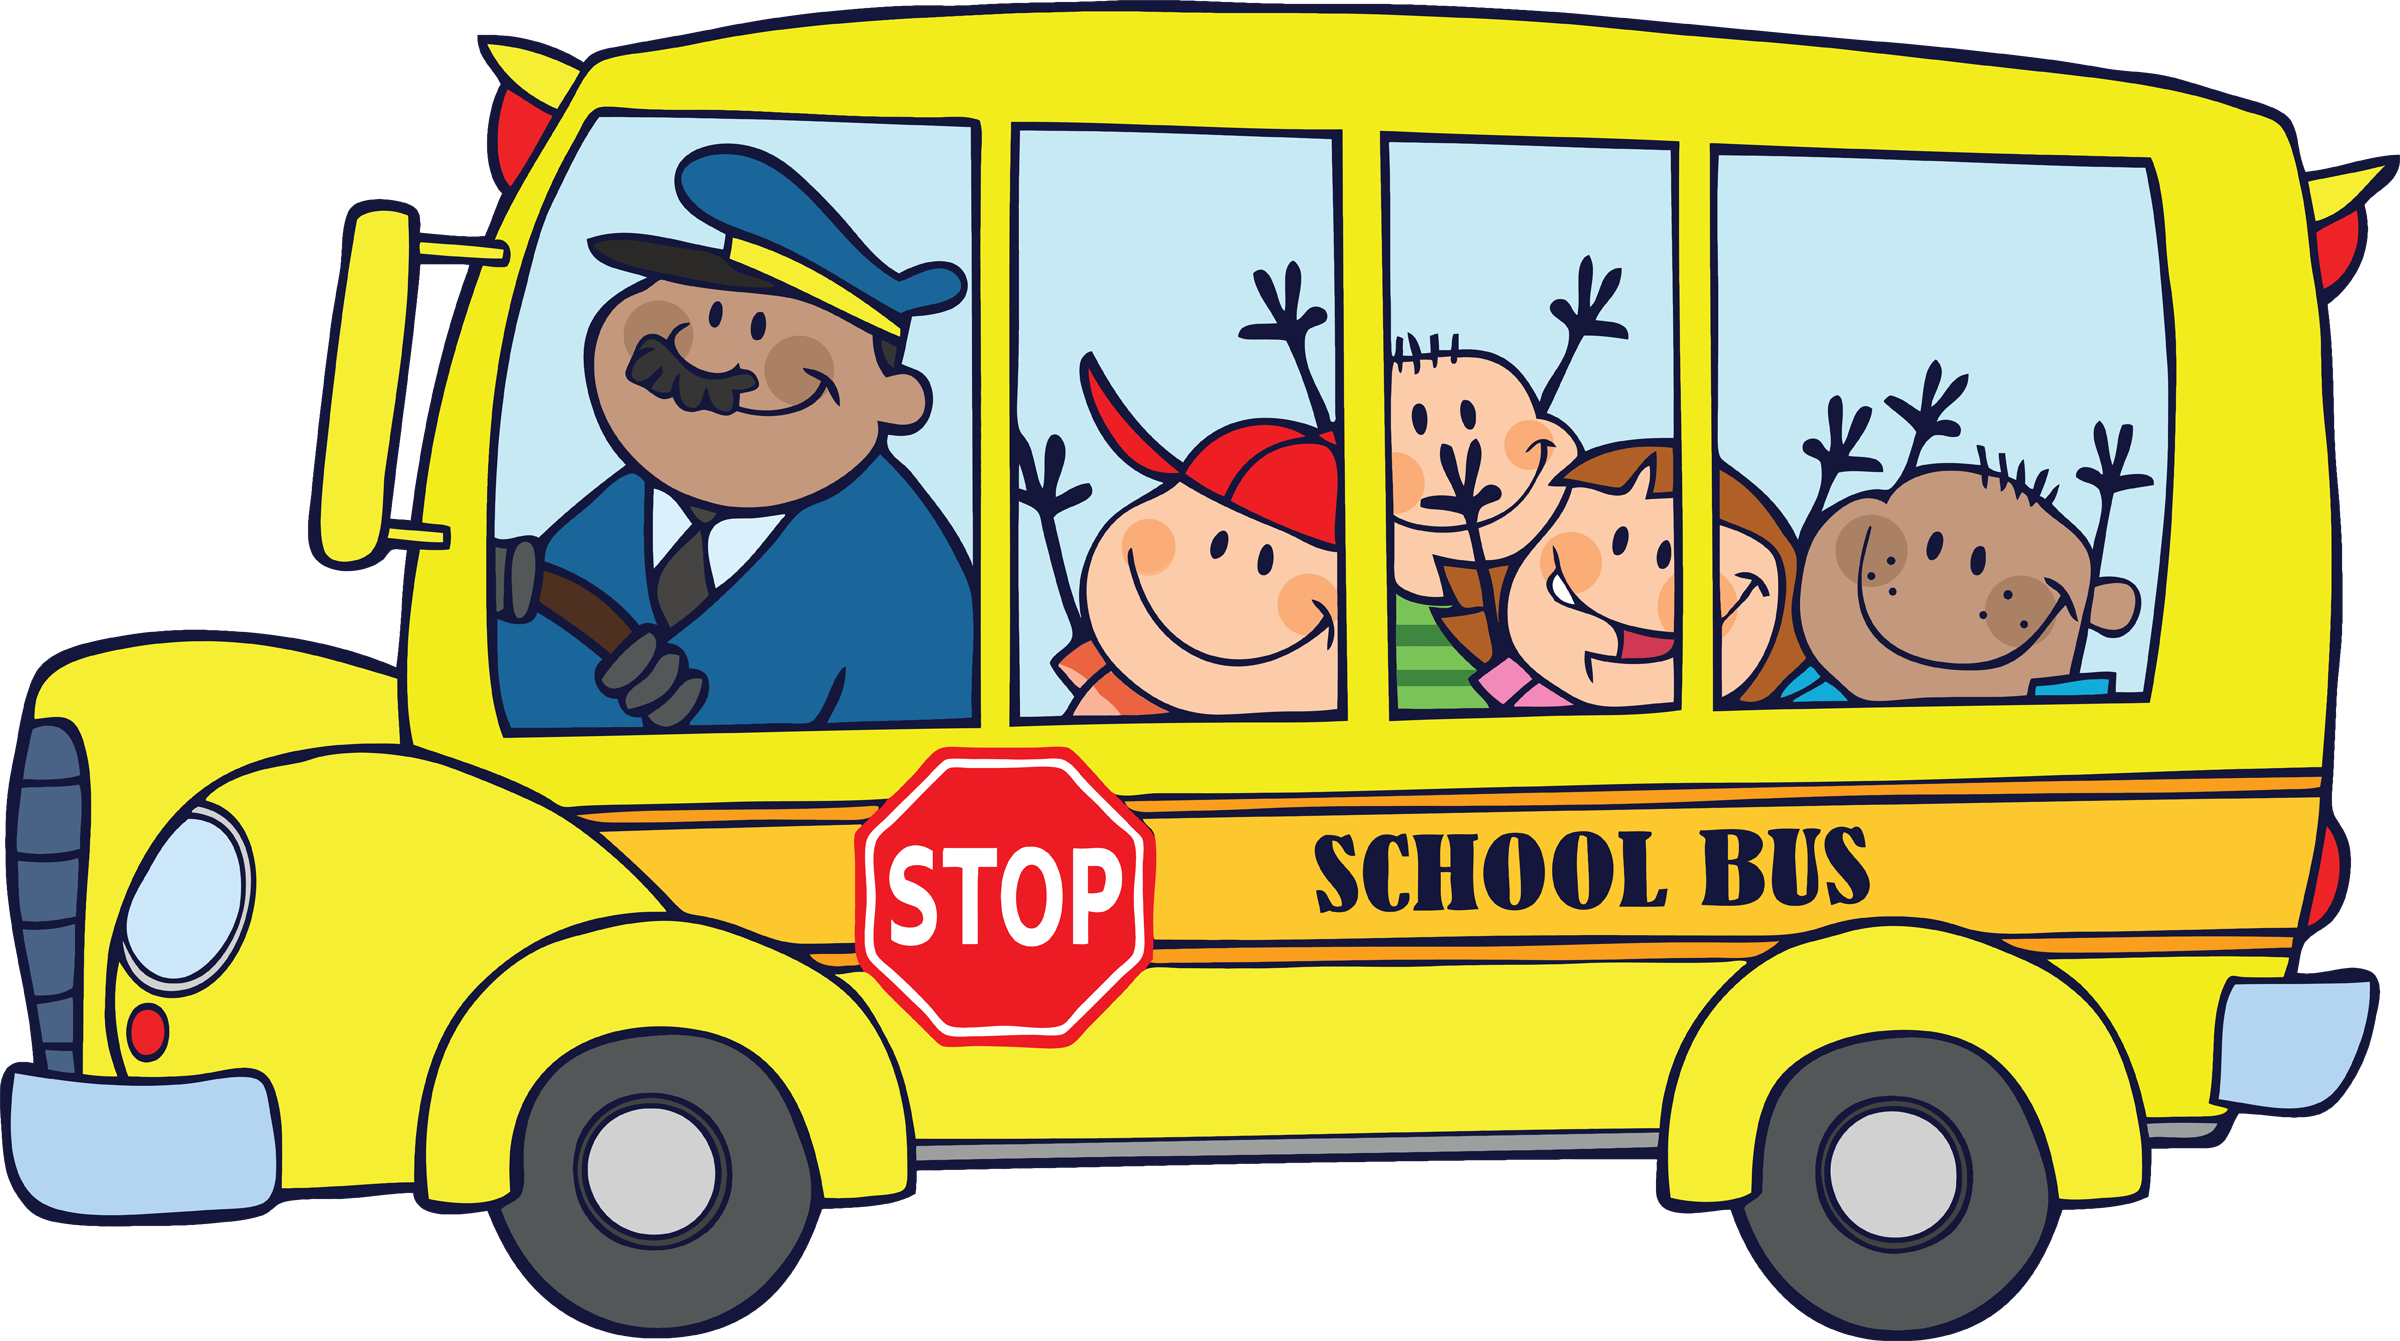 Children on school bus clipar - Clipart School Bus